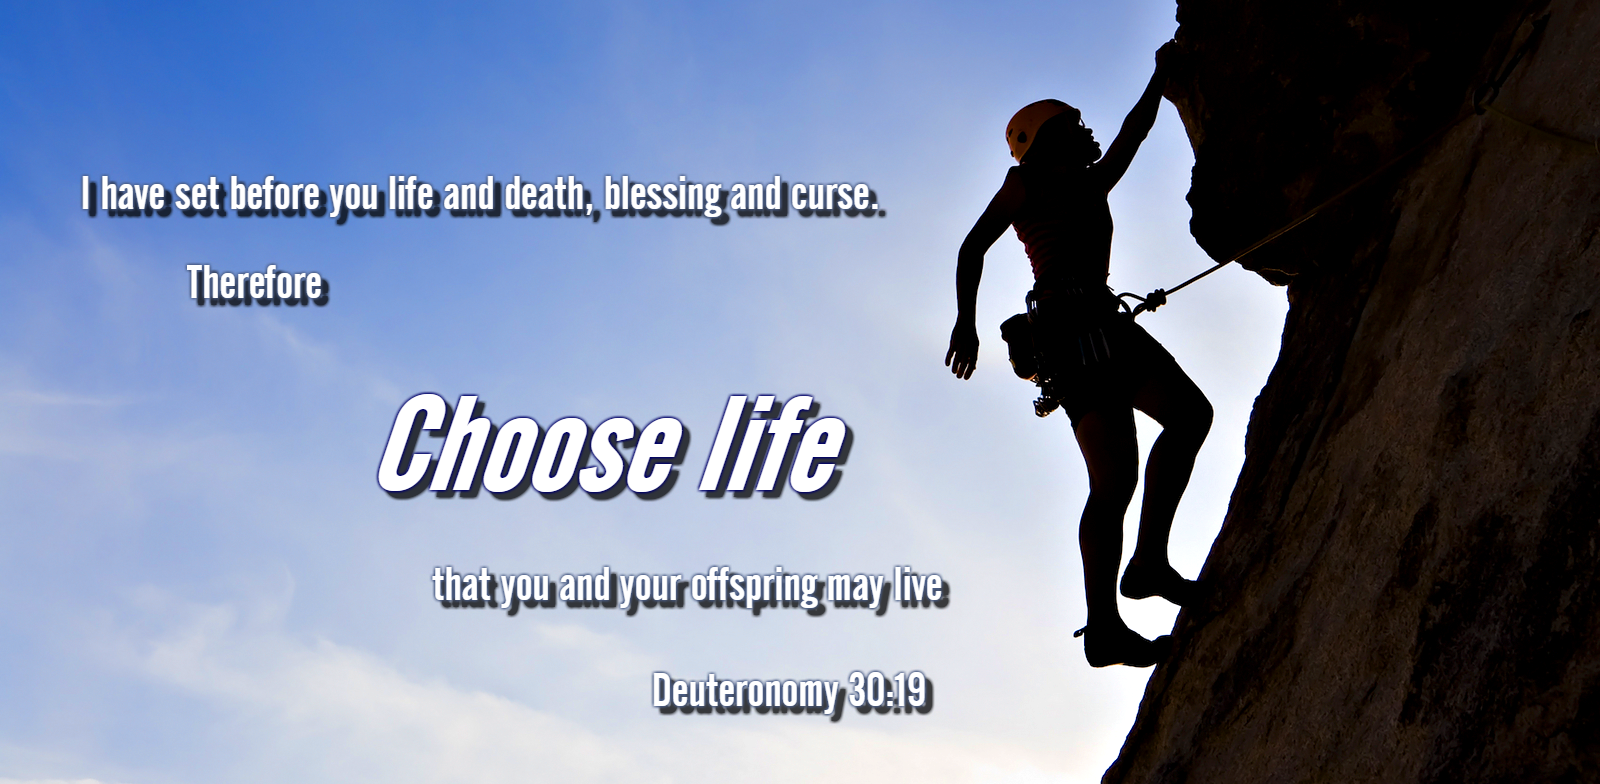 I call heaven and earth to witness against you today, that I have set before you life and death, blessing and curse. Therefore choose life, that you and your offspring may live, Deuteronomy 30:19